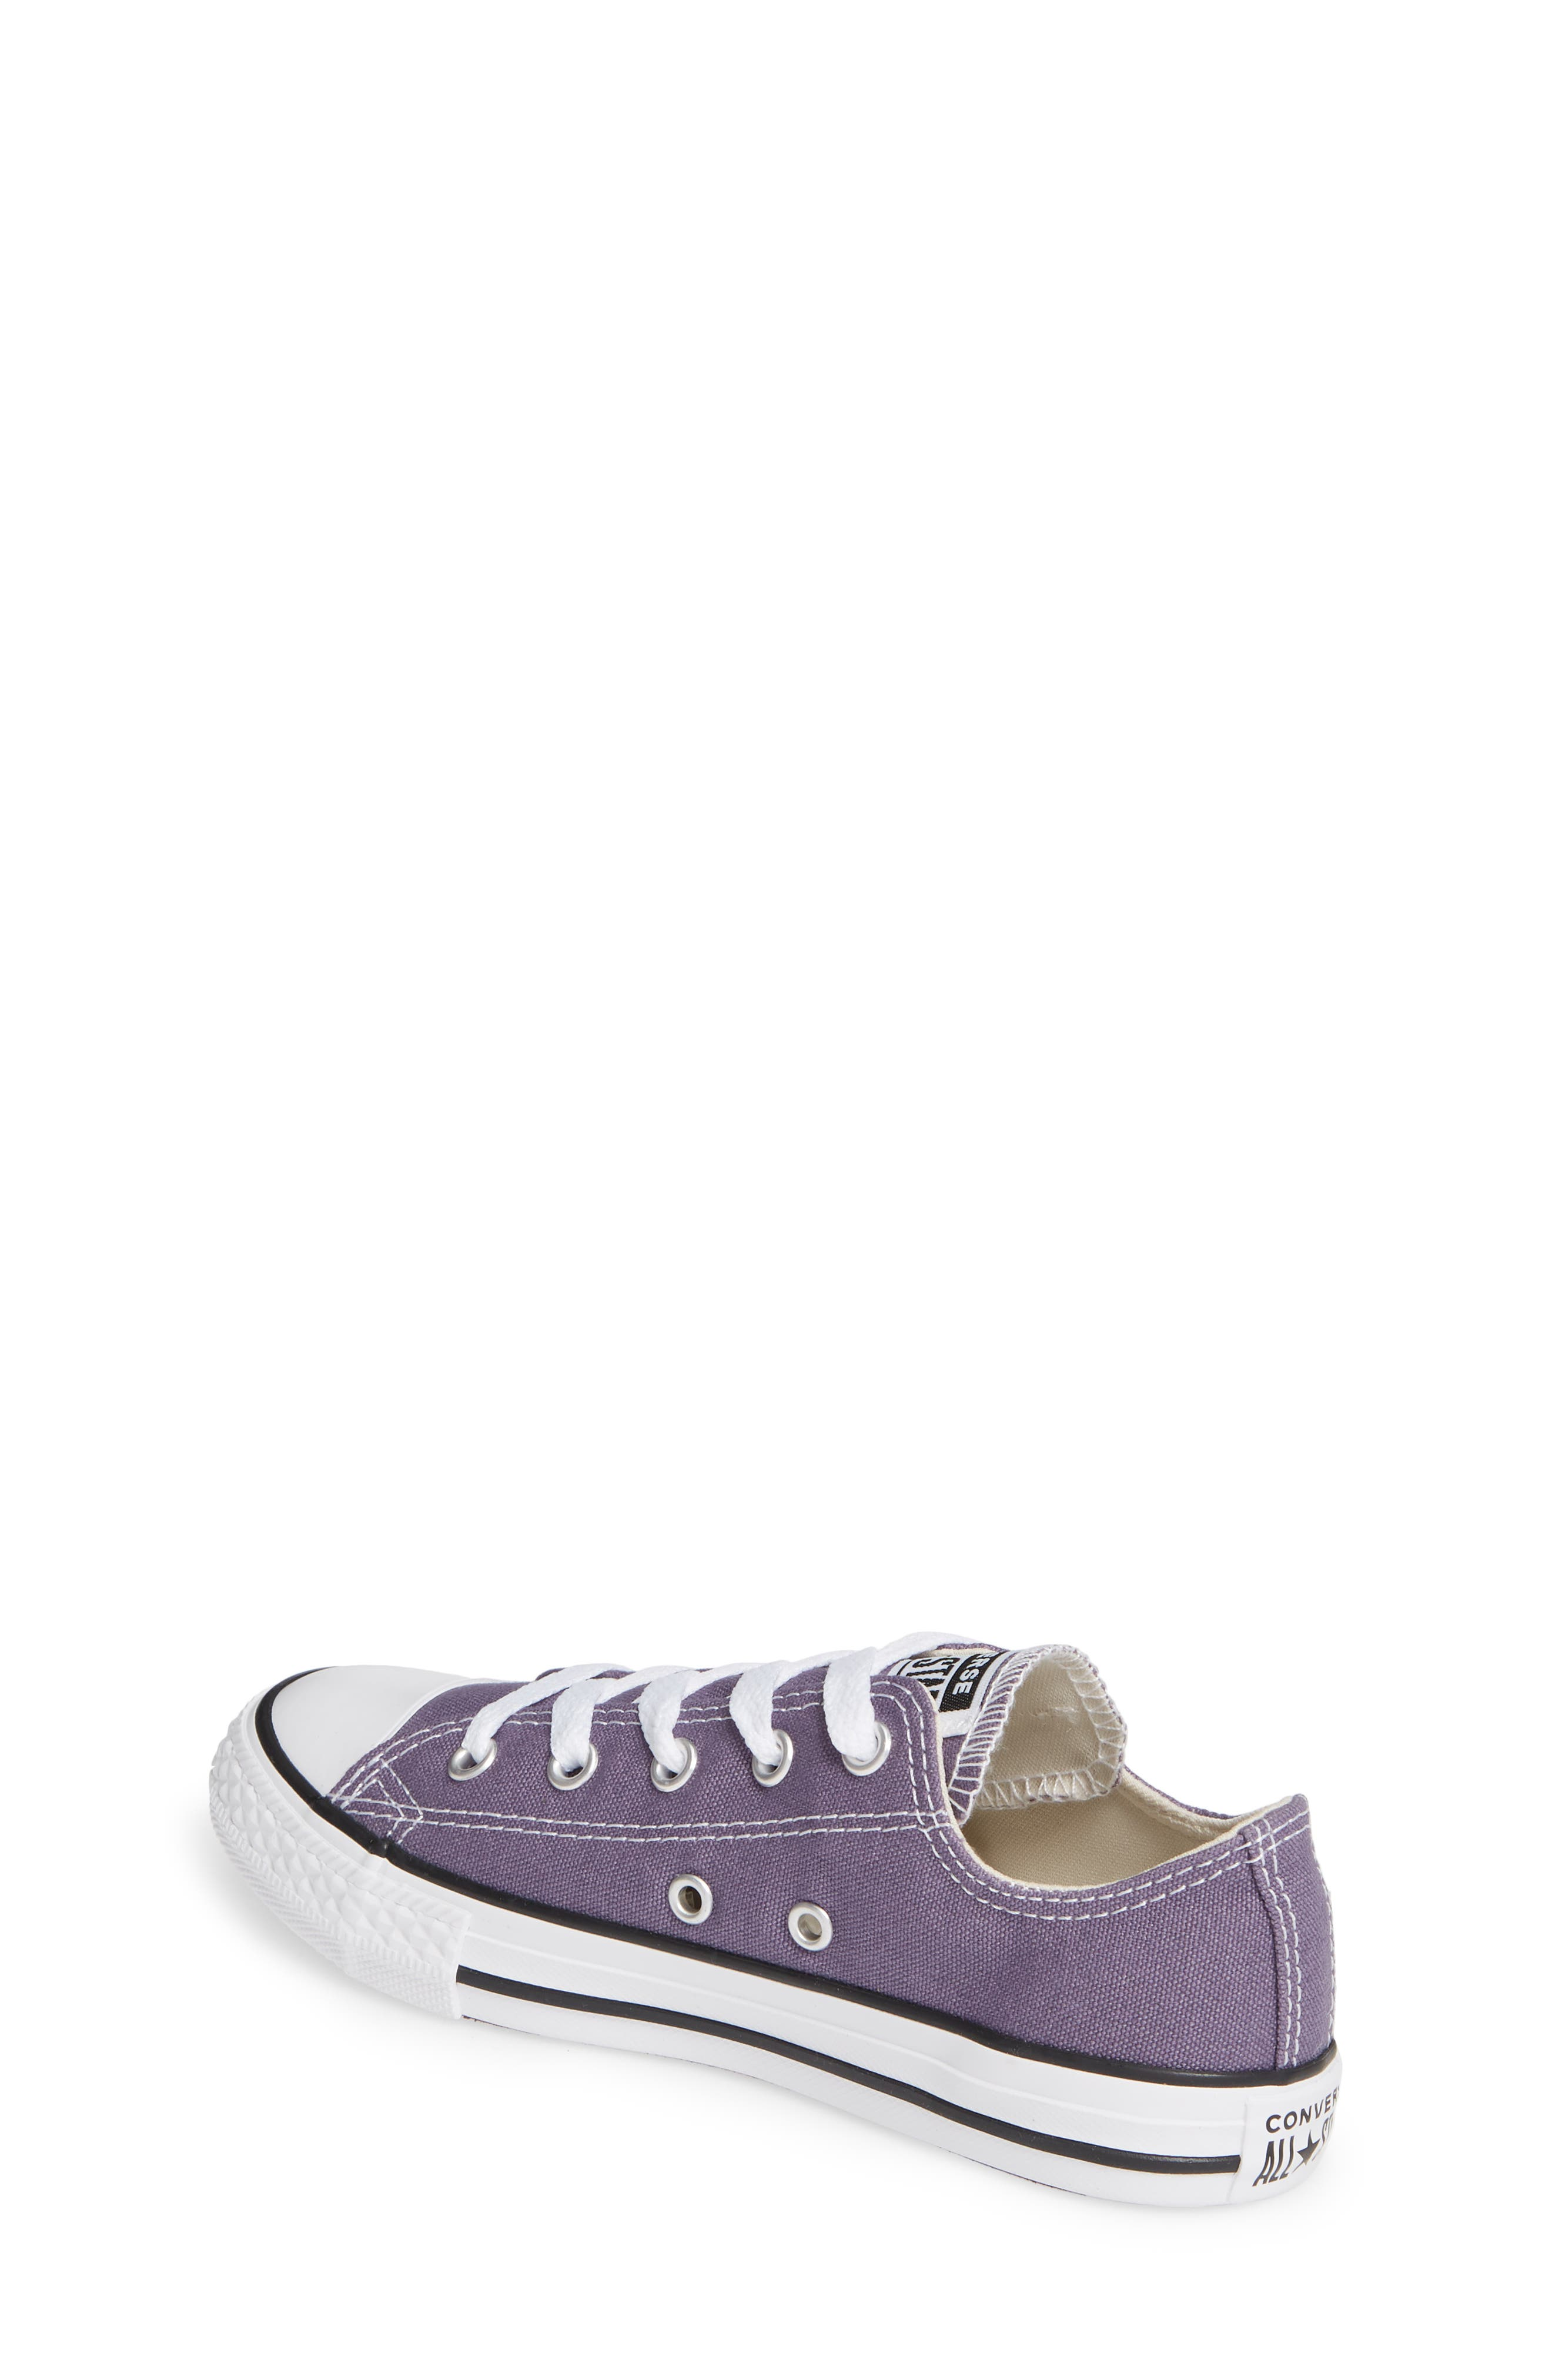 CONVERSE,                             Chuck Taylor<sup>®</sup> Sneaker,                             Alternate thumbnail 2, color,                             MOODY PURPLE/ NATURAL IVORY